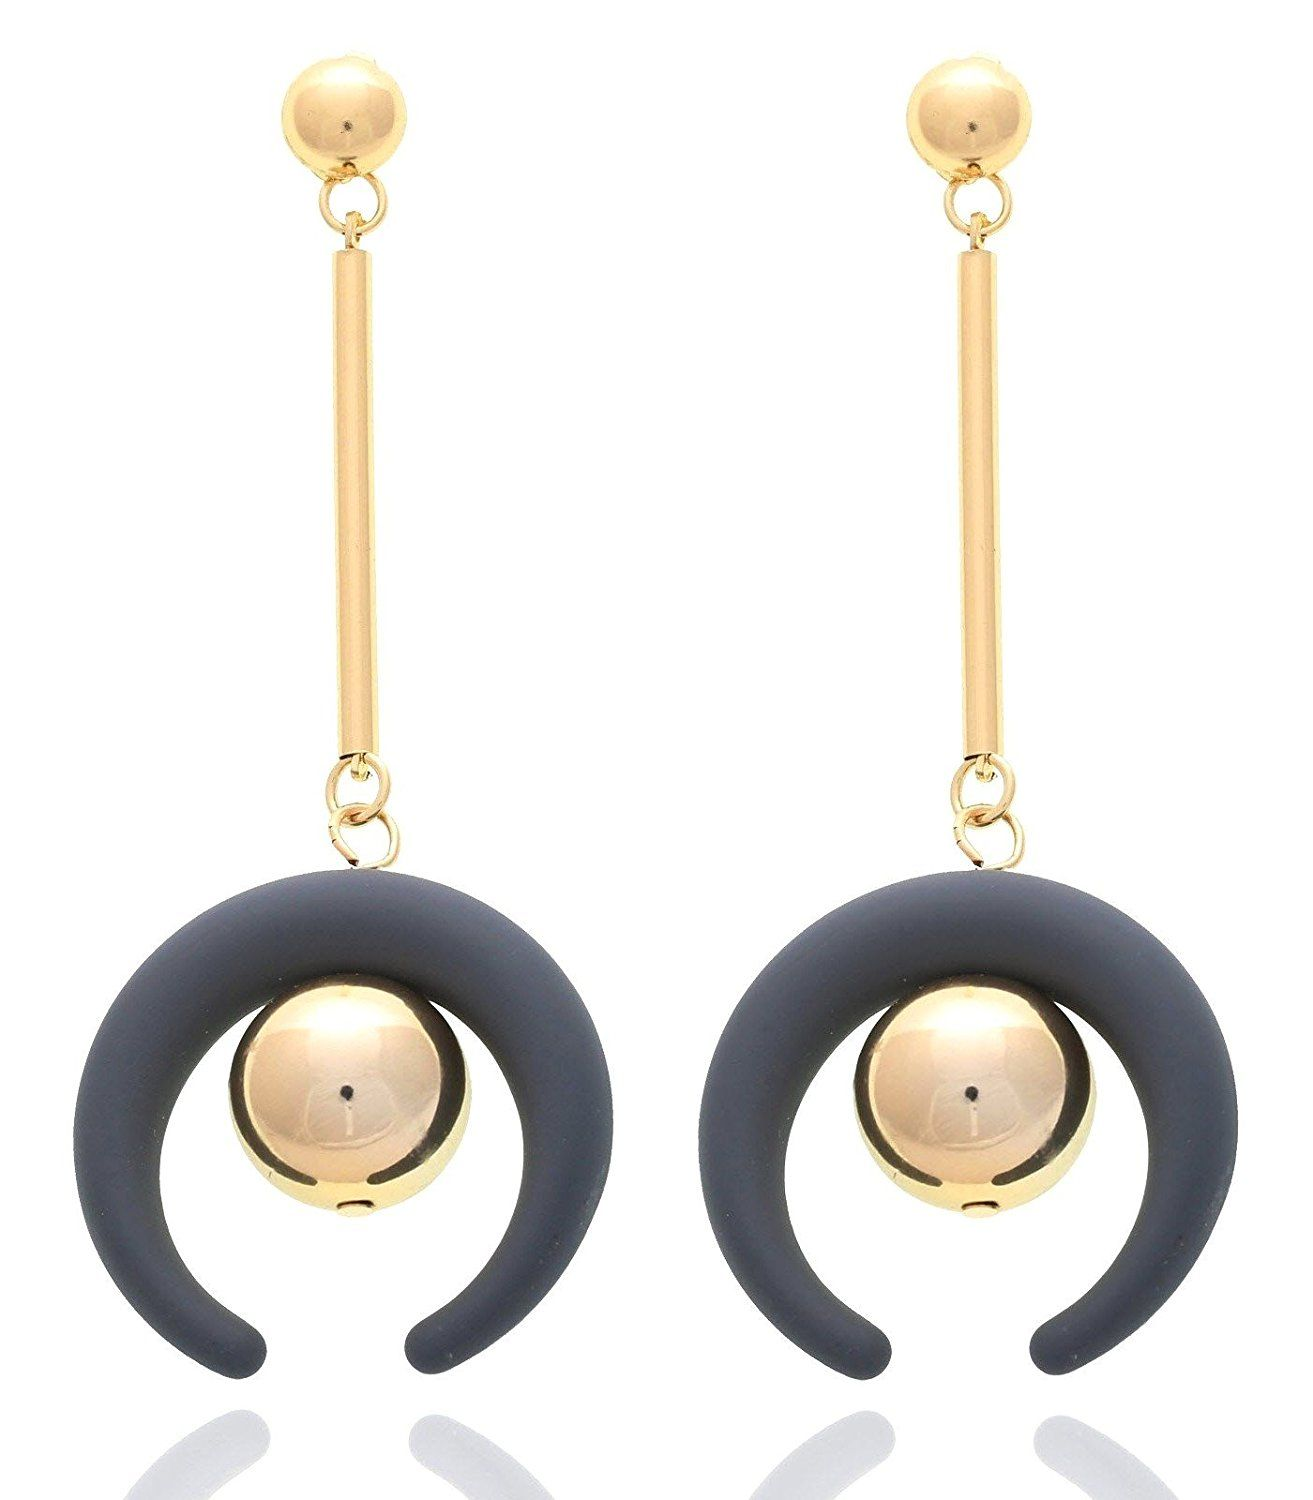 83% off ) Crunchy Fashion Jewellery Stylish Gold Plated Earrings ...